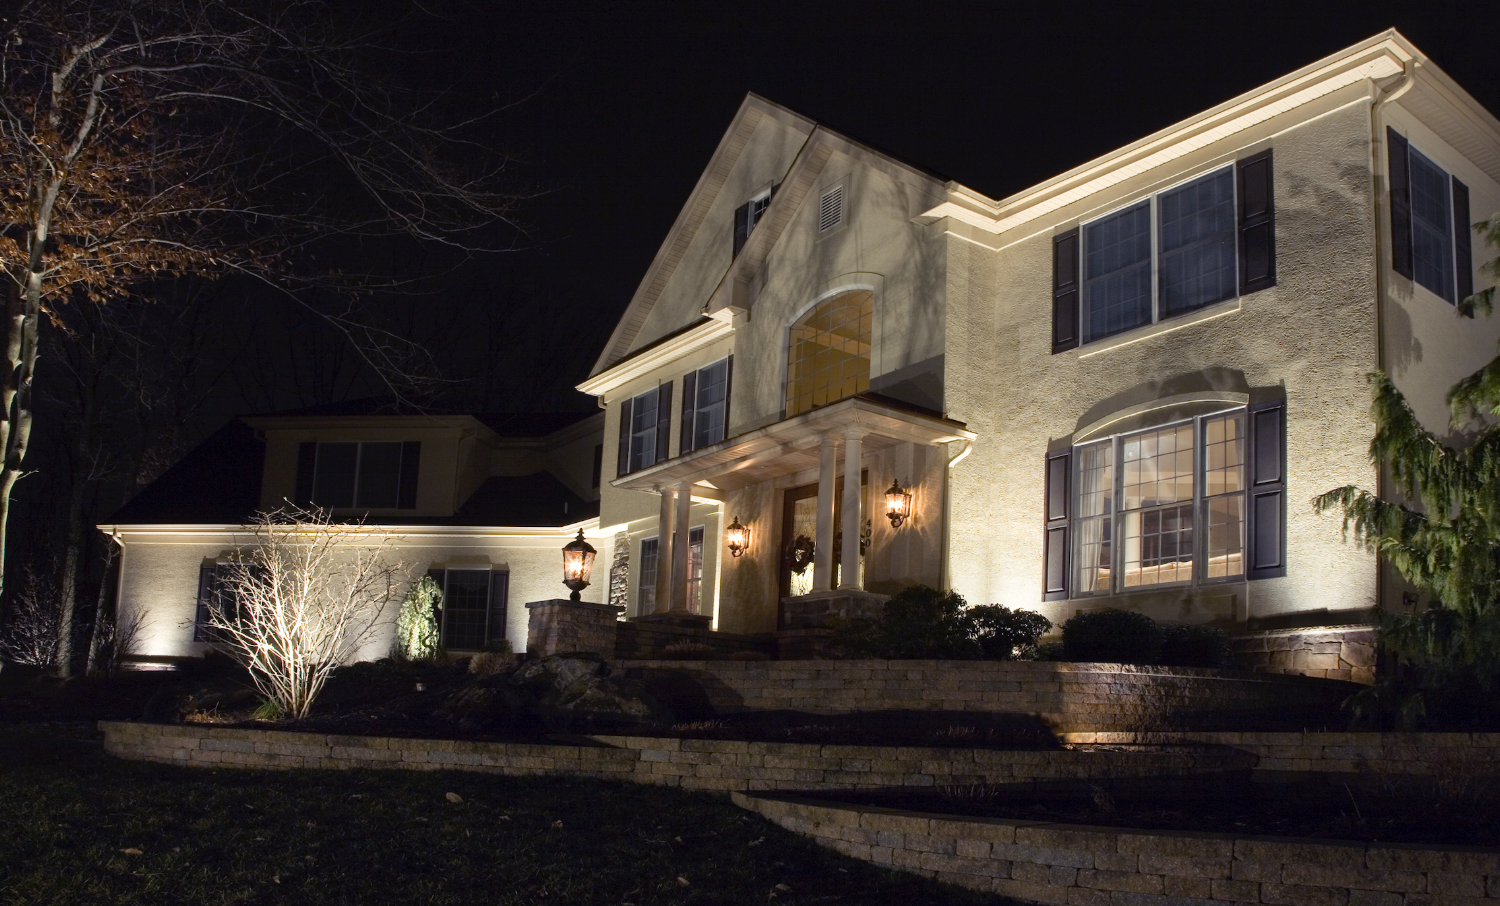 Harmony Hill Landscaping installs low-voltage LED landscape lighting in Poughquag, Poughkeepsie, Pleasant Valley, Lagrangeville,Wappingers Falls, and the Hudson Valley. Image Cast Lighting.